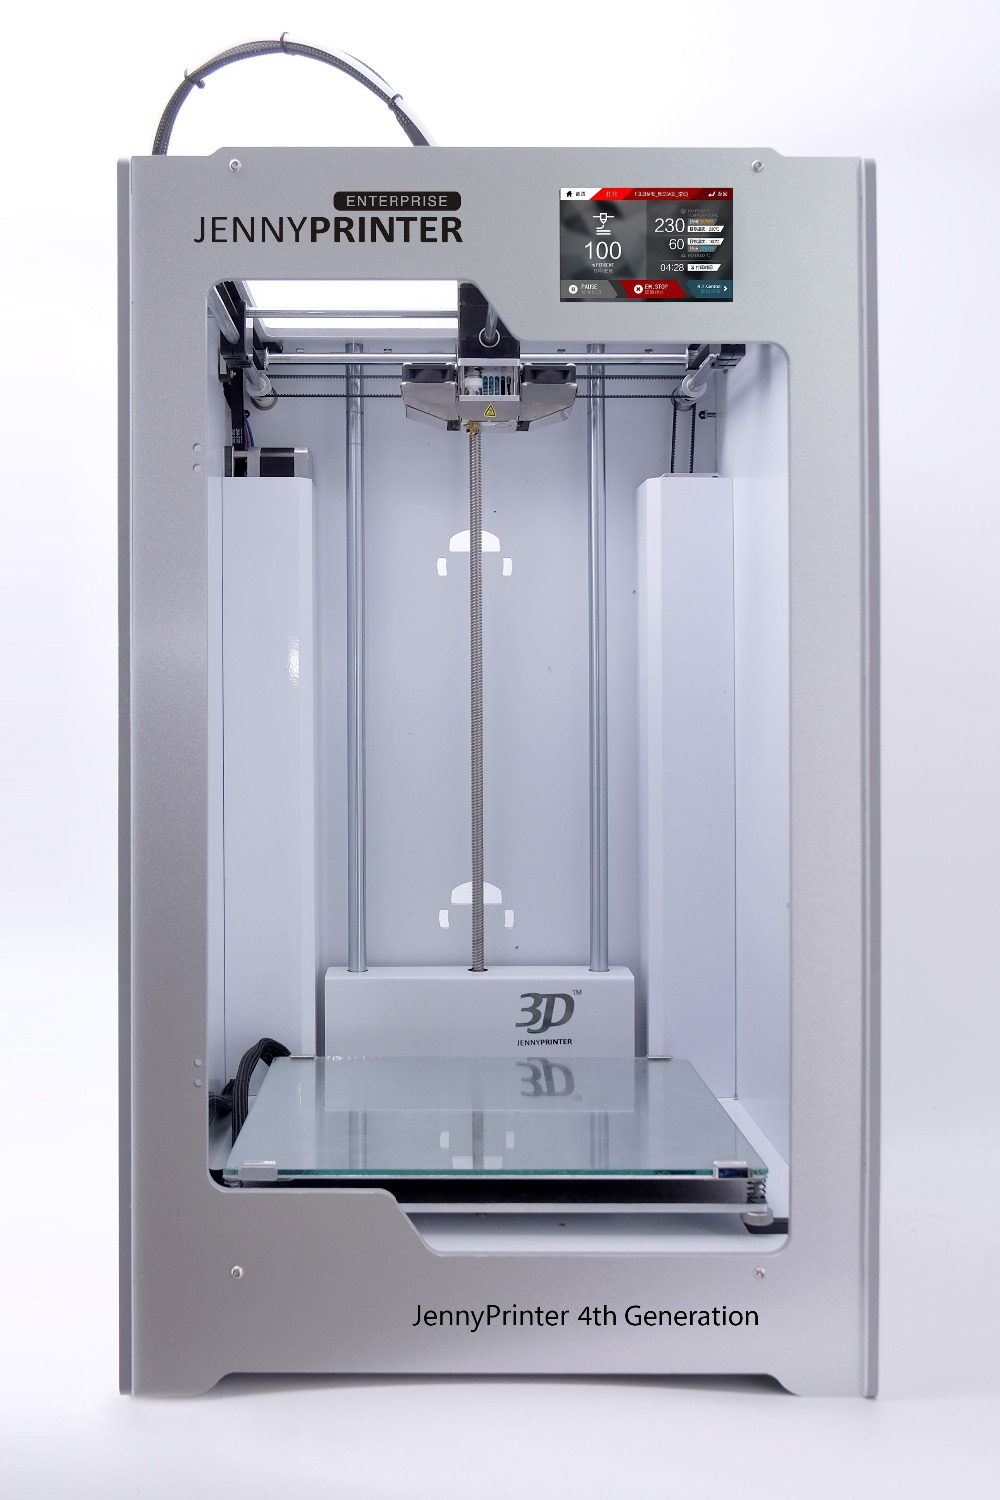 2017 Newest!JennyPrinter Z360TS Wih Touch Screen DIY KIT For Ultimaker 2 UM2 Extended Auto Leveling 3D Printer Include all Parts 2016 newest jennyprinter v1 6 diy kit is compatible with ultimaker 2 um2 extended included all 3d printer parts